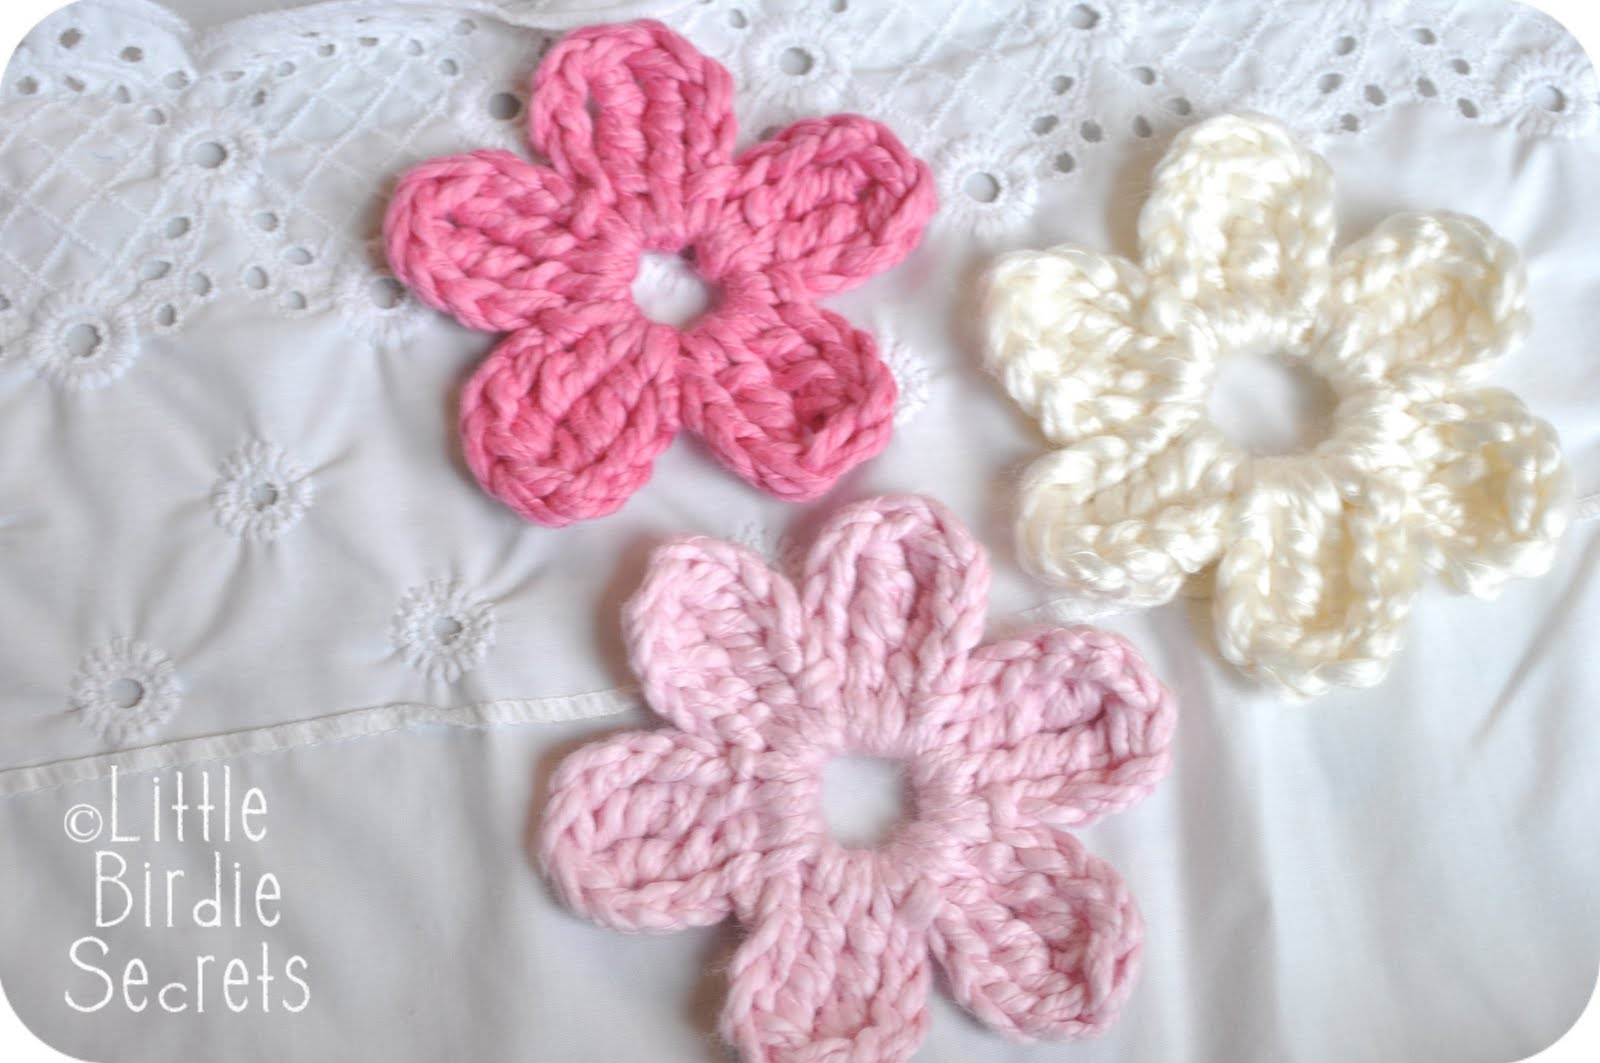 Crochet Patterns : baby hat and bootie patterns in the shop {plus a free flower pattern ...